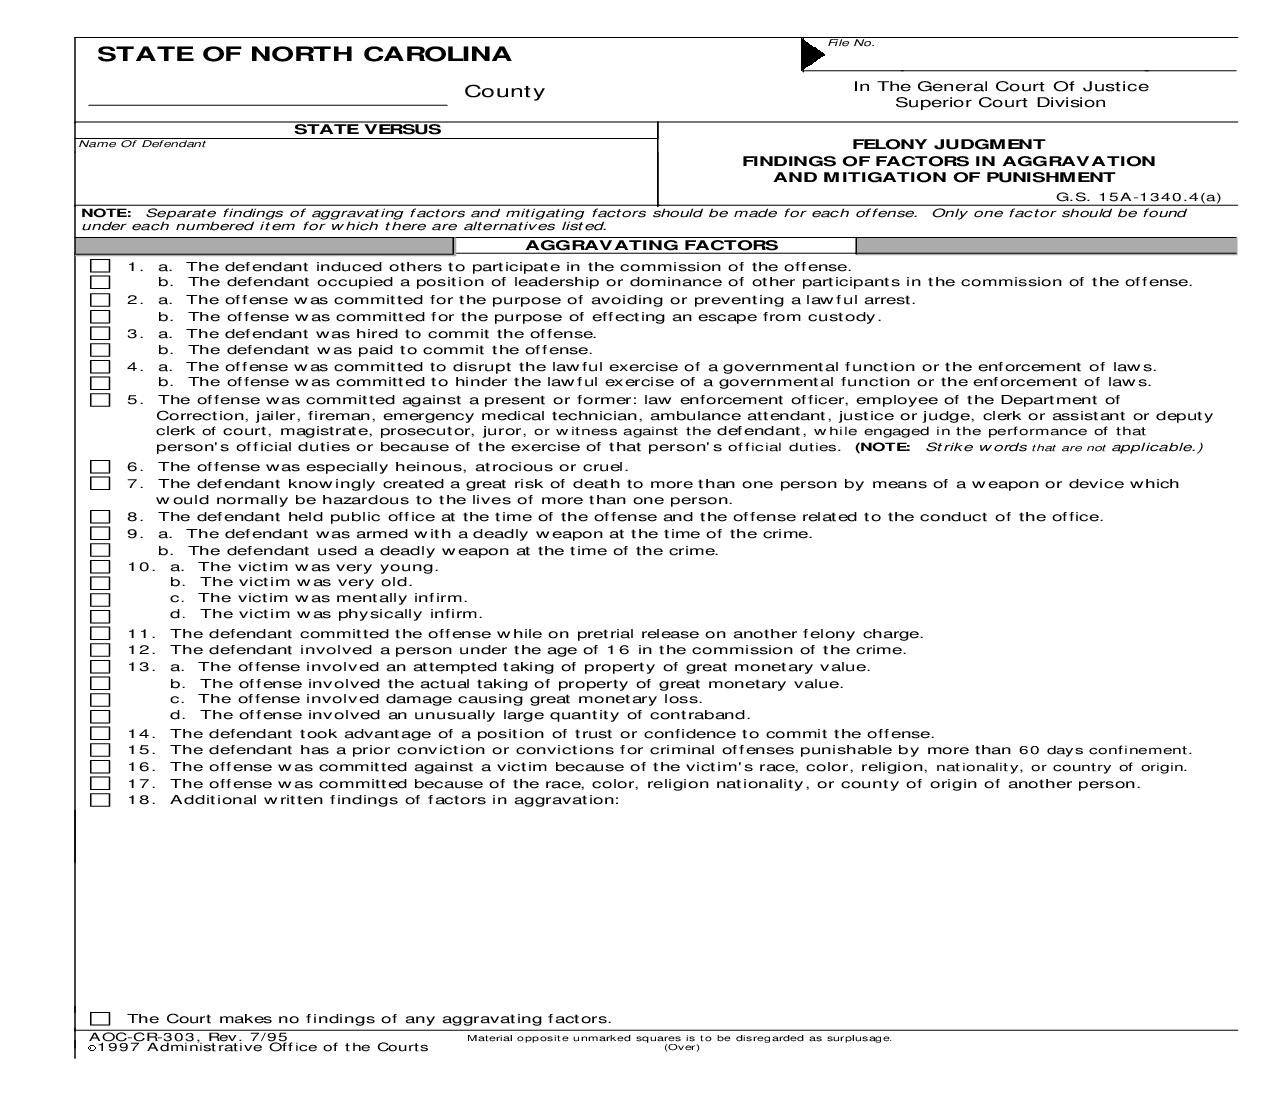 Felony Judgment Findings Of Factors In Aggravation And Mitigation Of Punishment {CR-303}   Pdf Fpdf Doc Docx   North Carolina